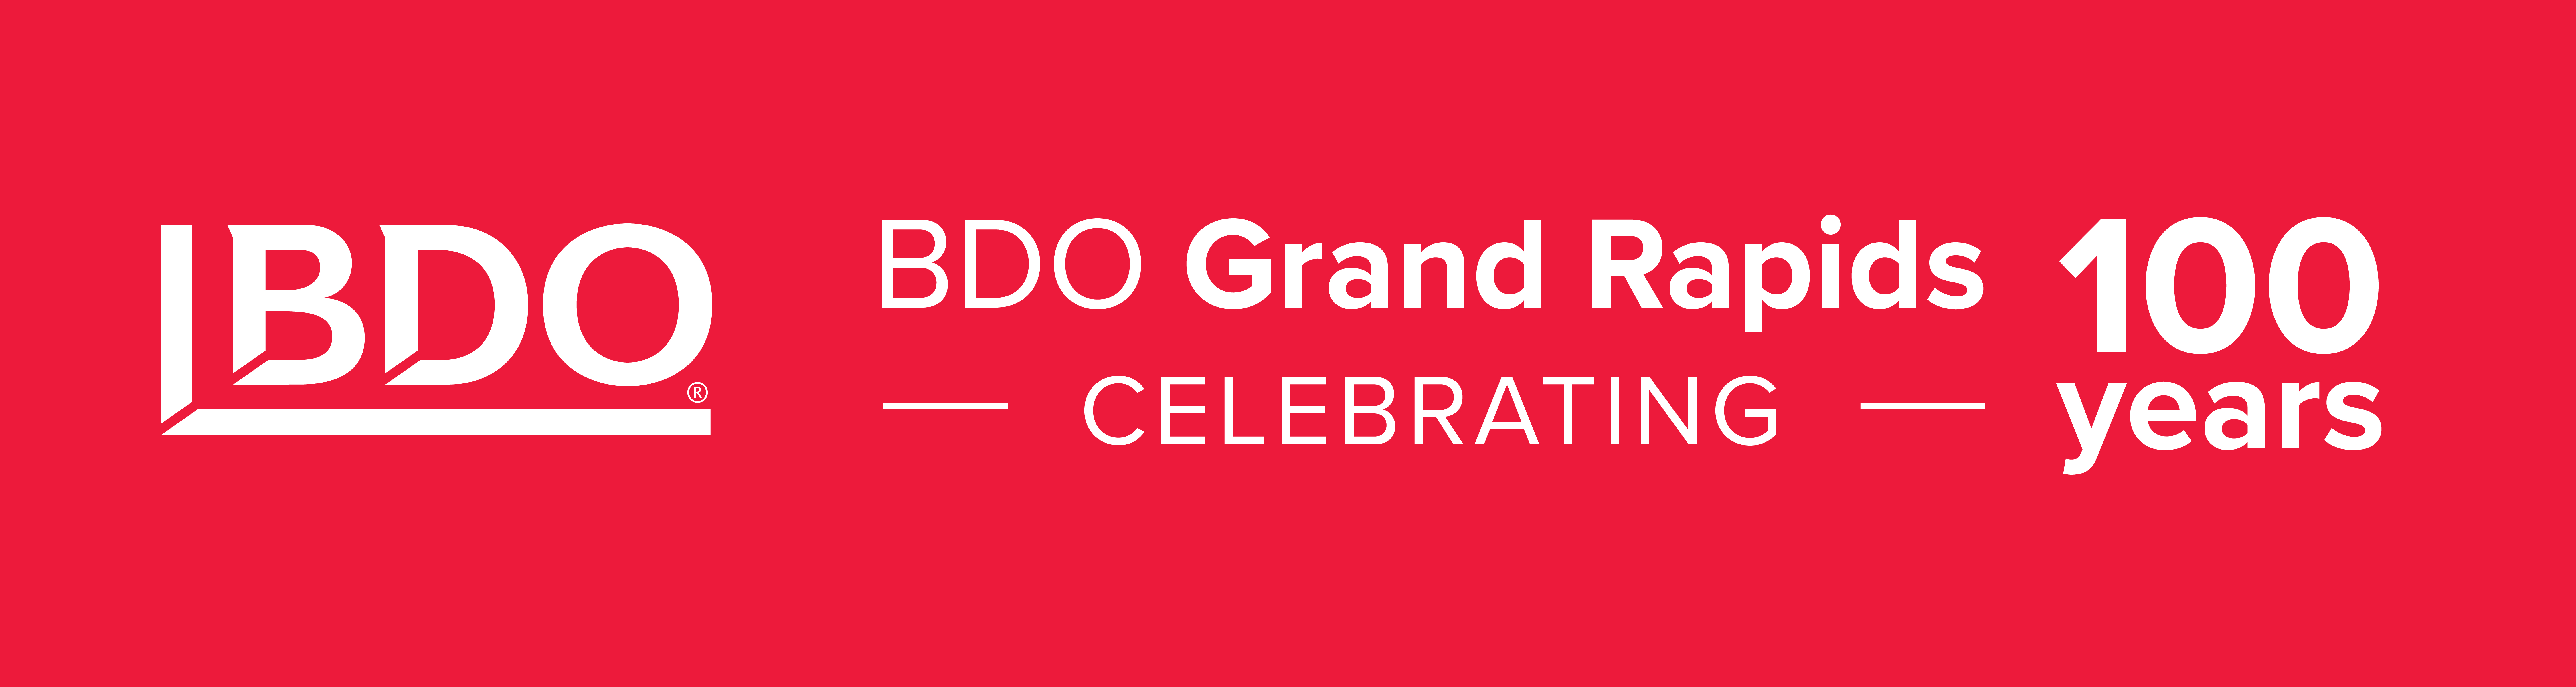 BDO Grand Rapids Celebrating 100 Years